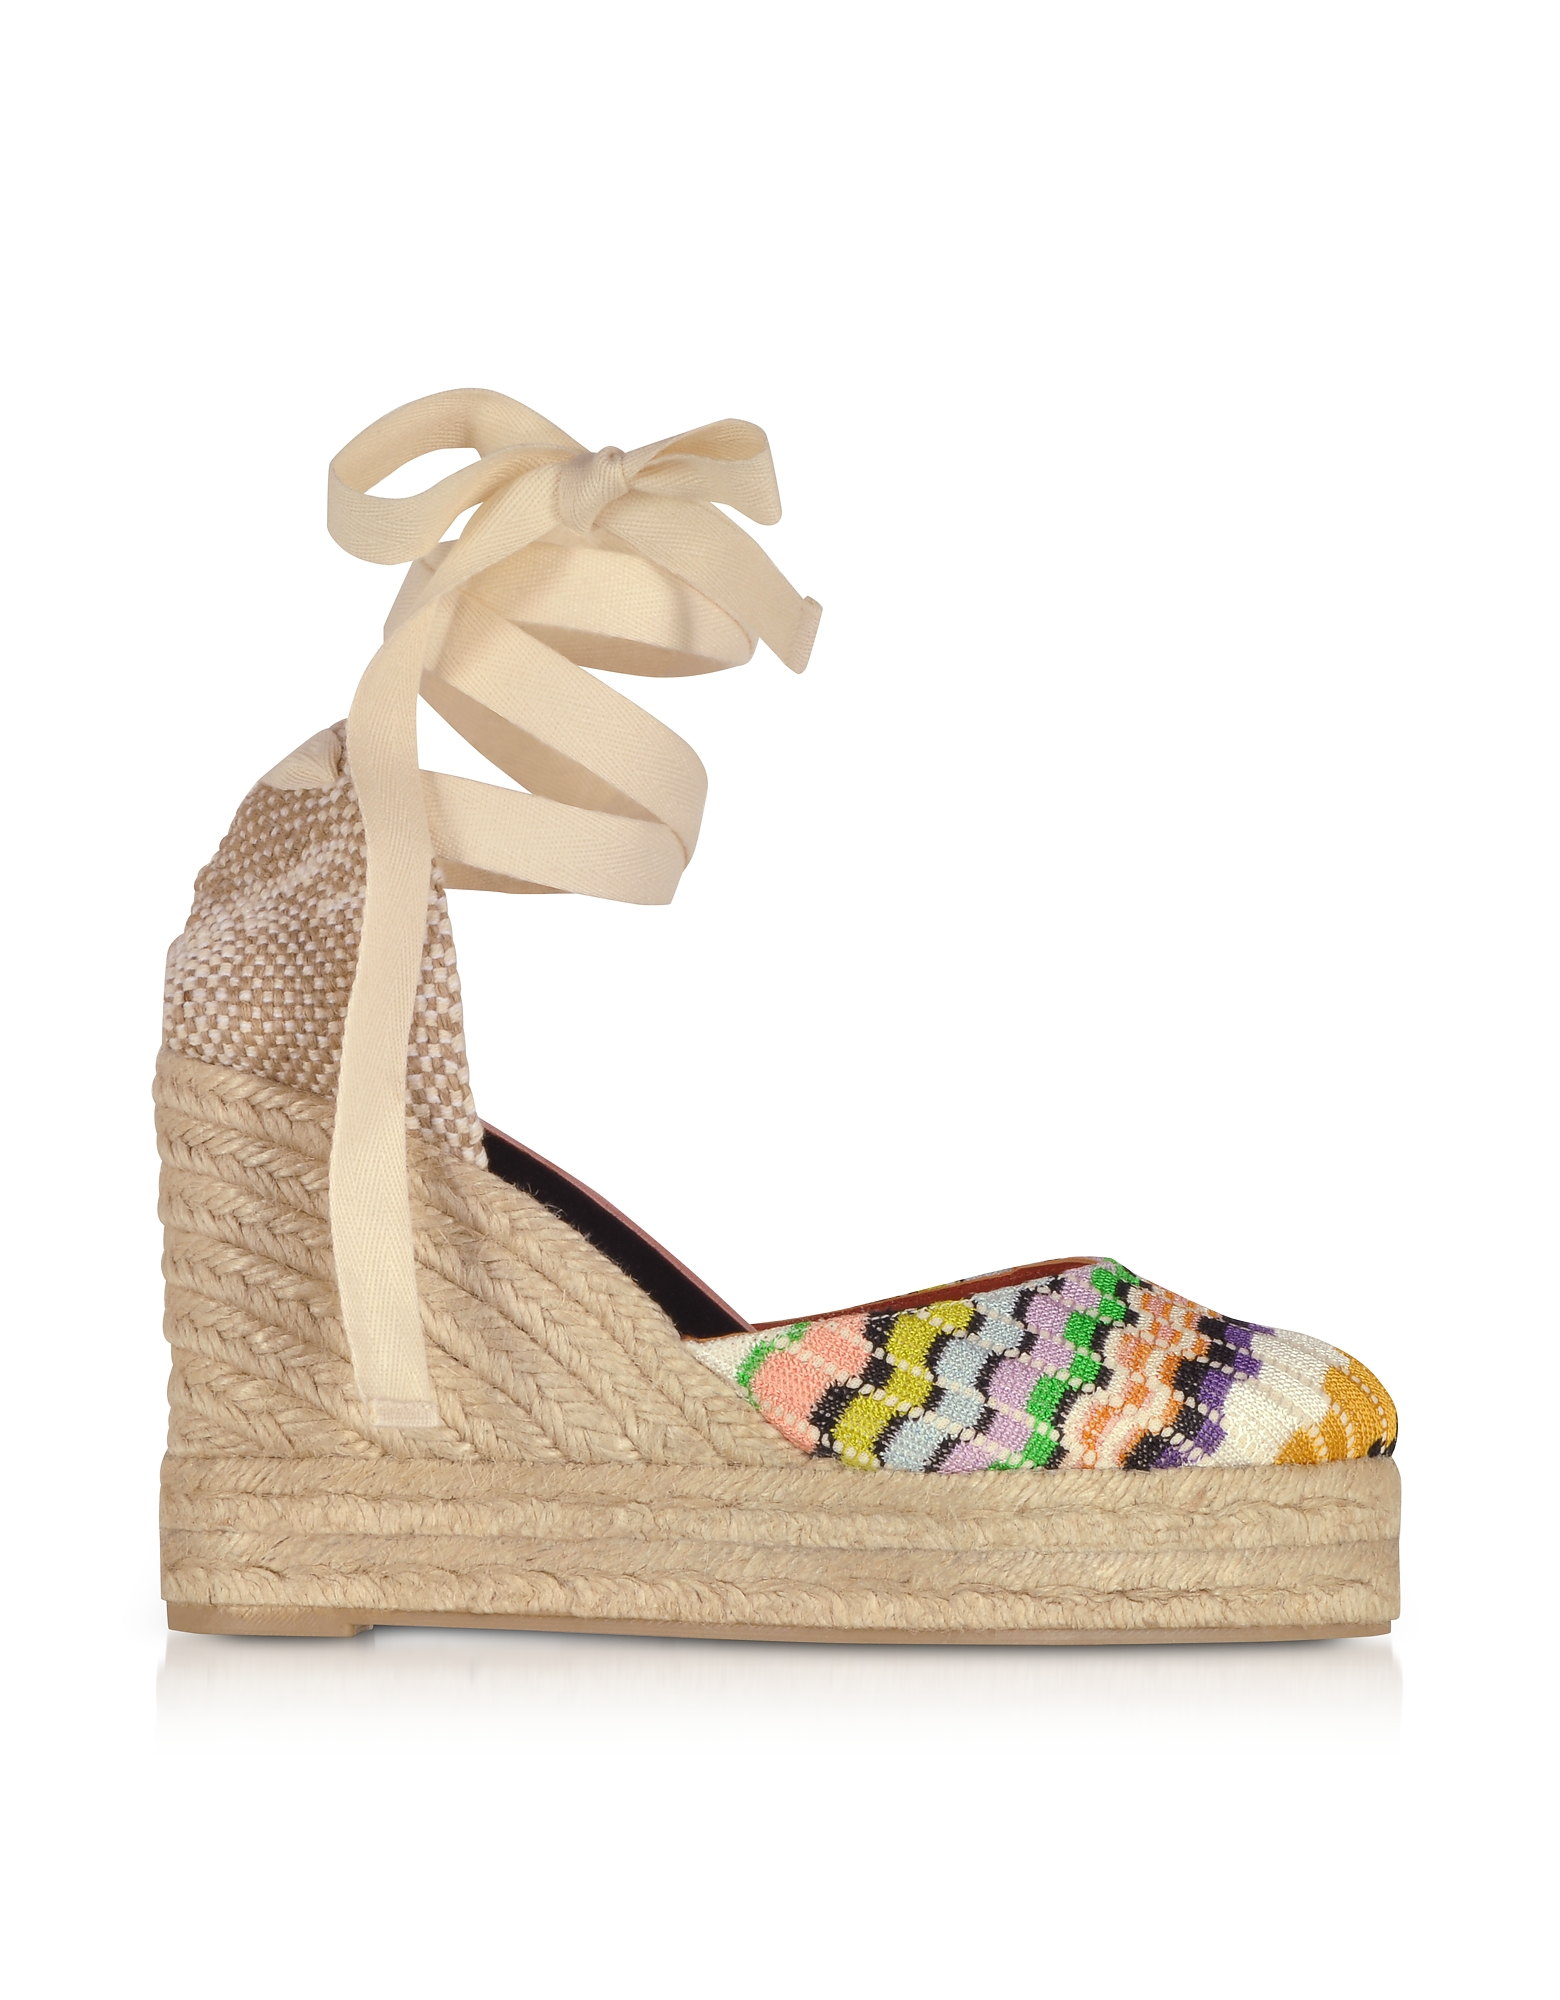 X Castañer – Carina Multicolor Canvas Wedge Espadrilles